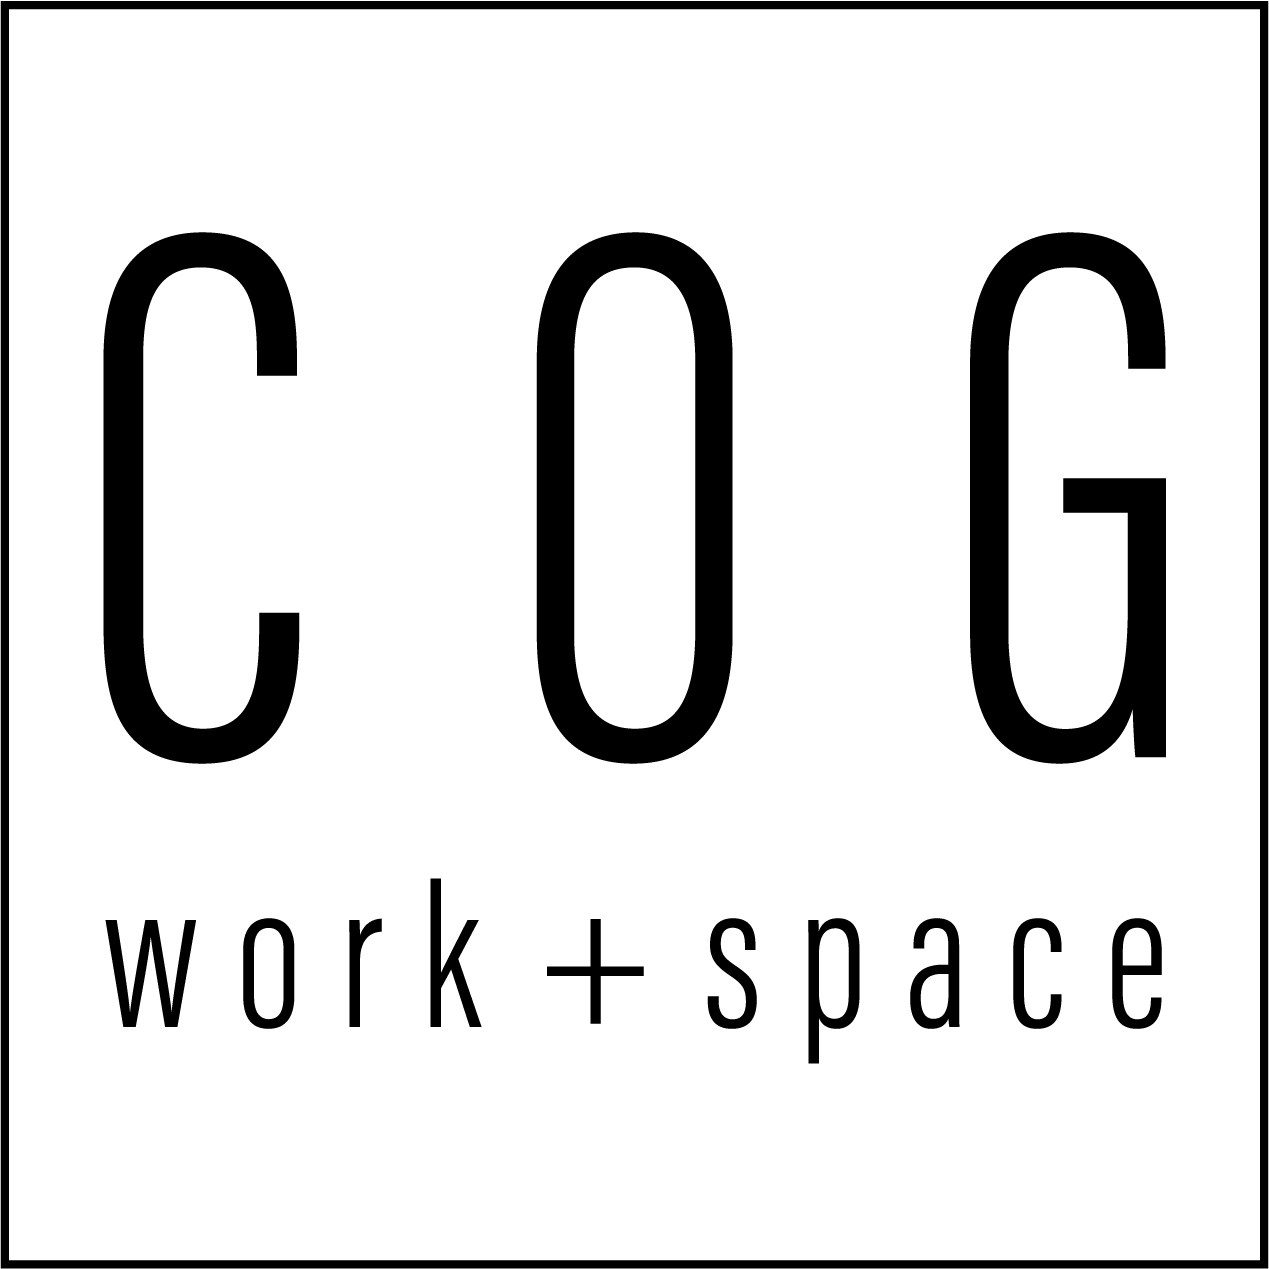 COG_logo_work+space_with_box